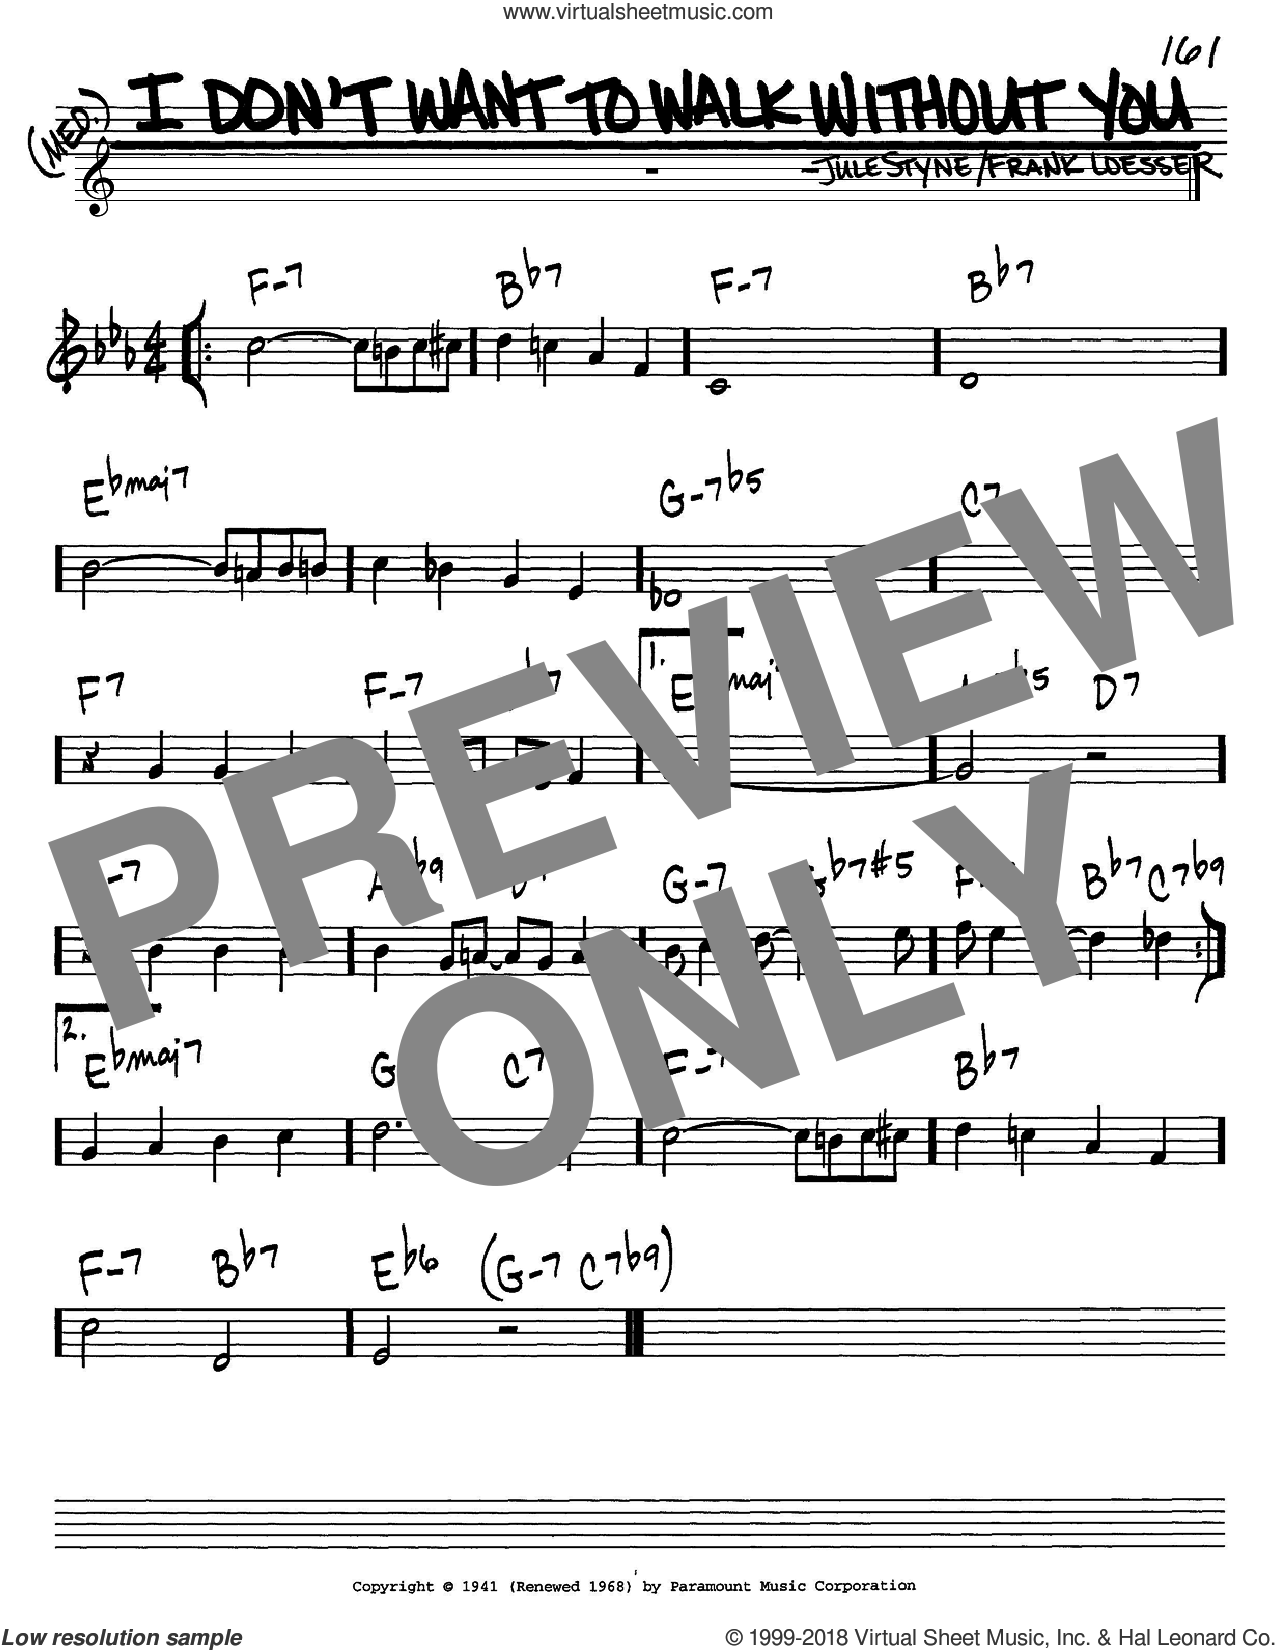 I Don't Want To Walk Without You sheet music for voice and other instruments (C) by Jule Styne and Frank Loesser. Score Image Preview.